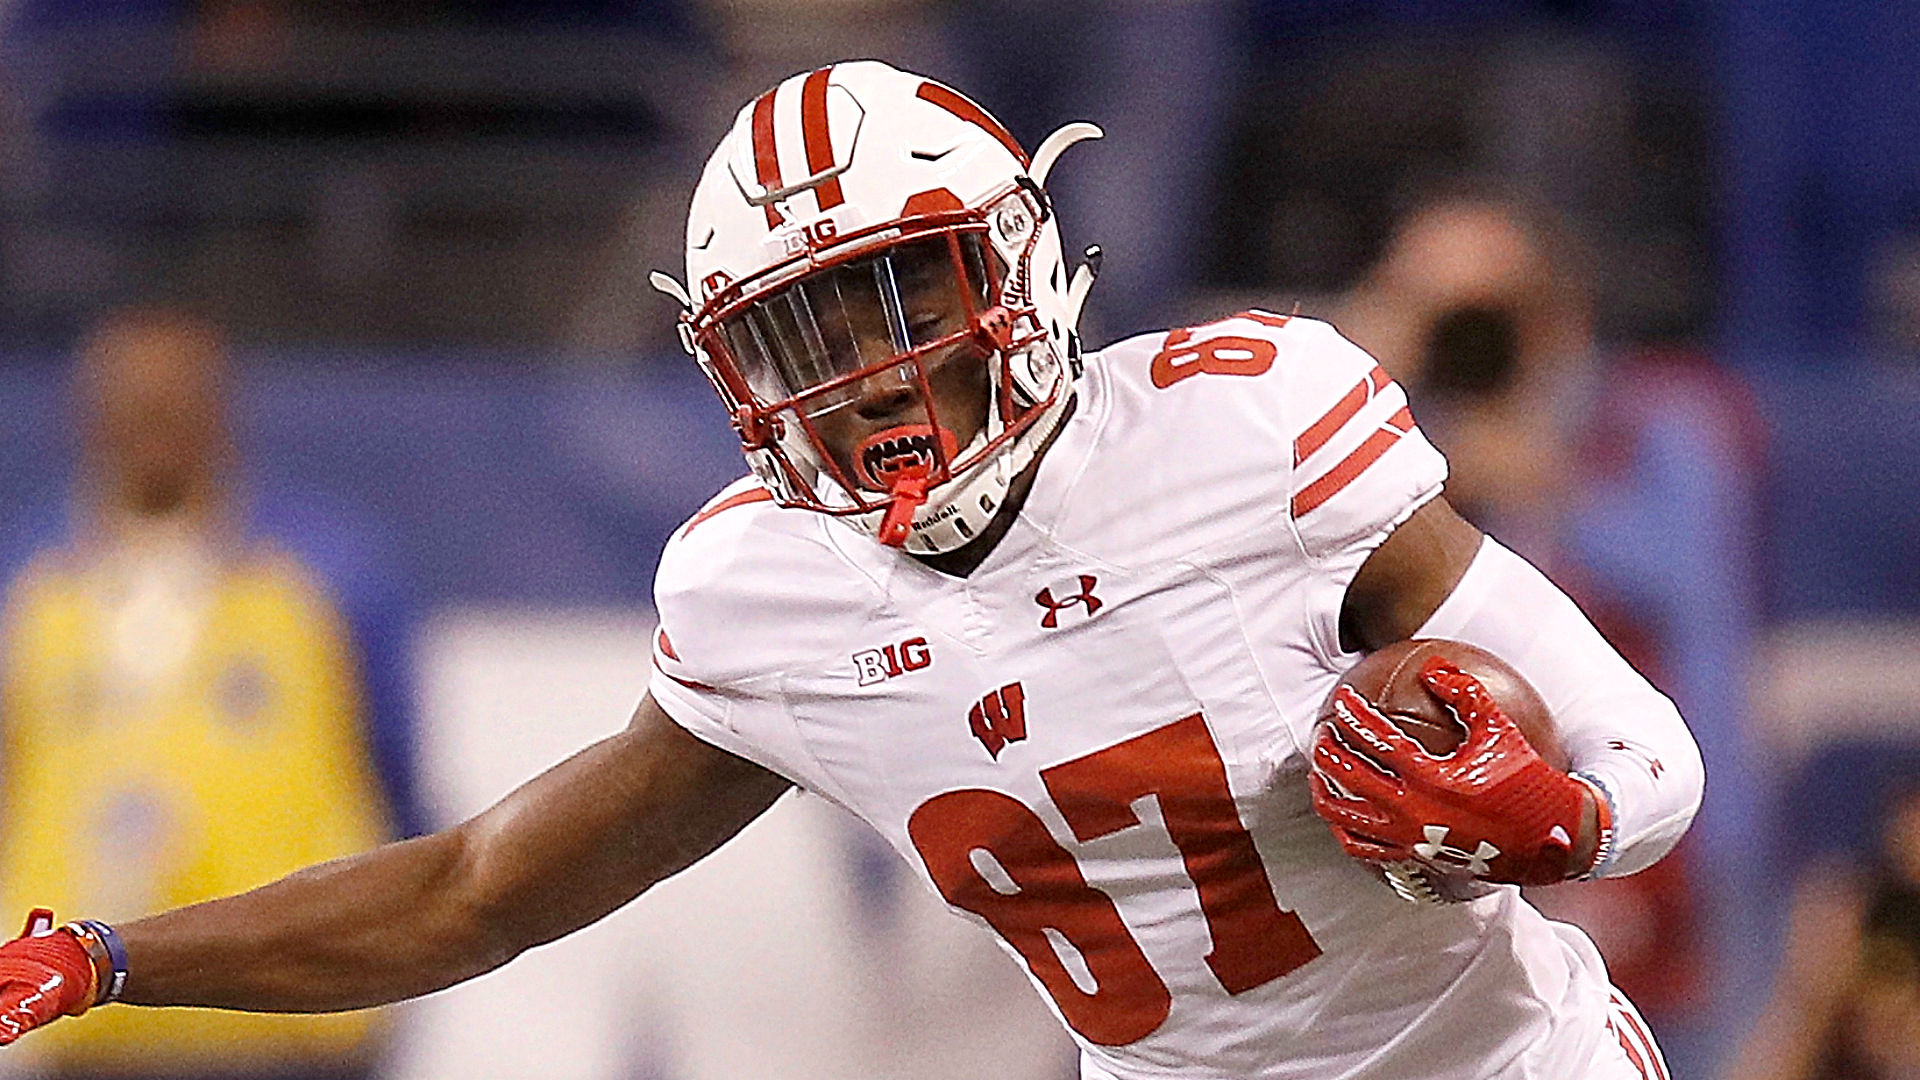 Wisconsin WR Cephus out for rest of season